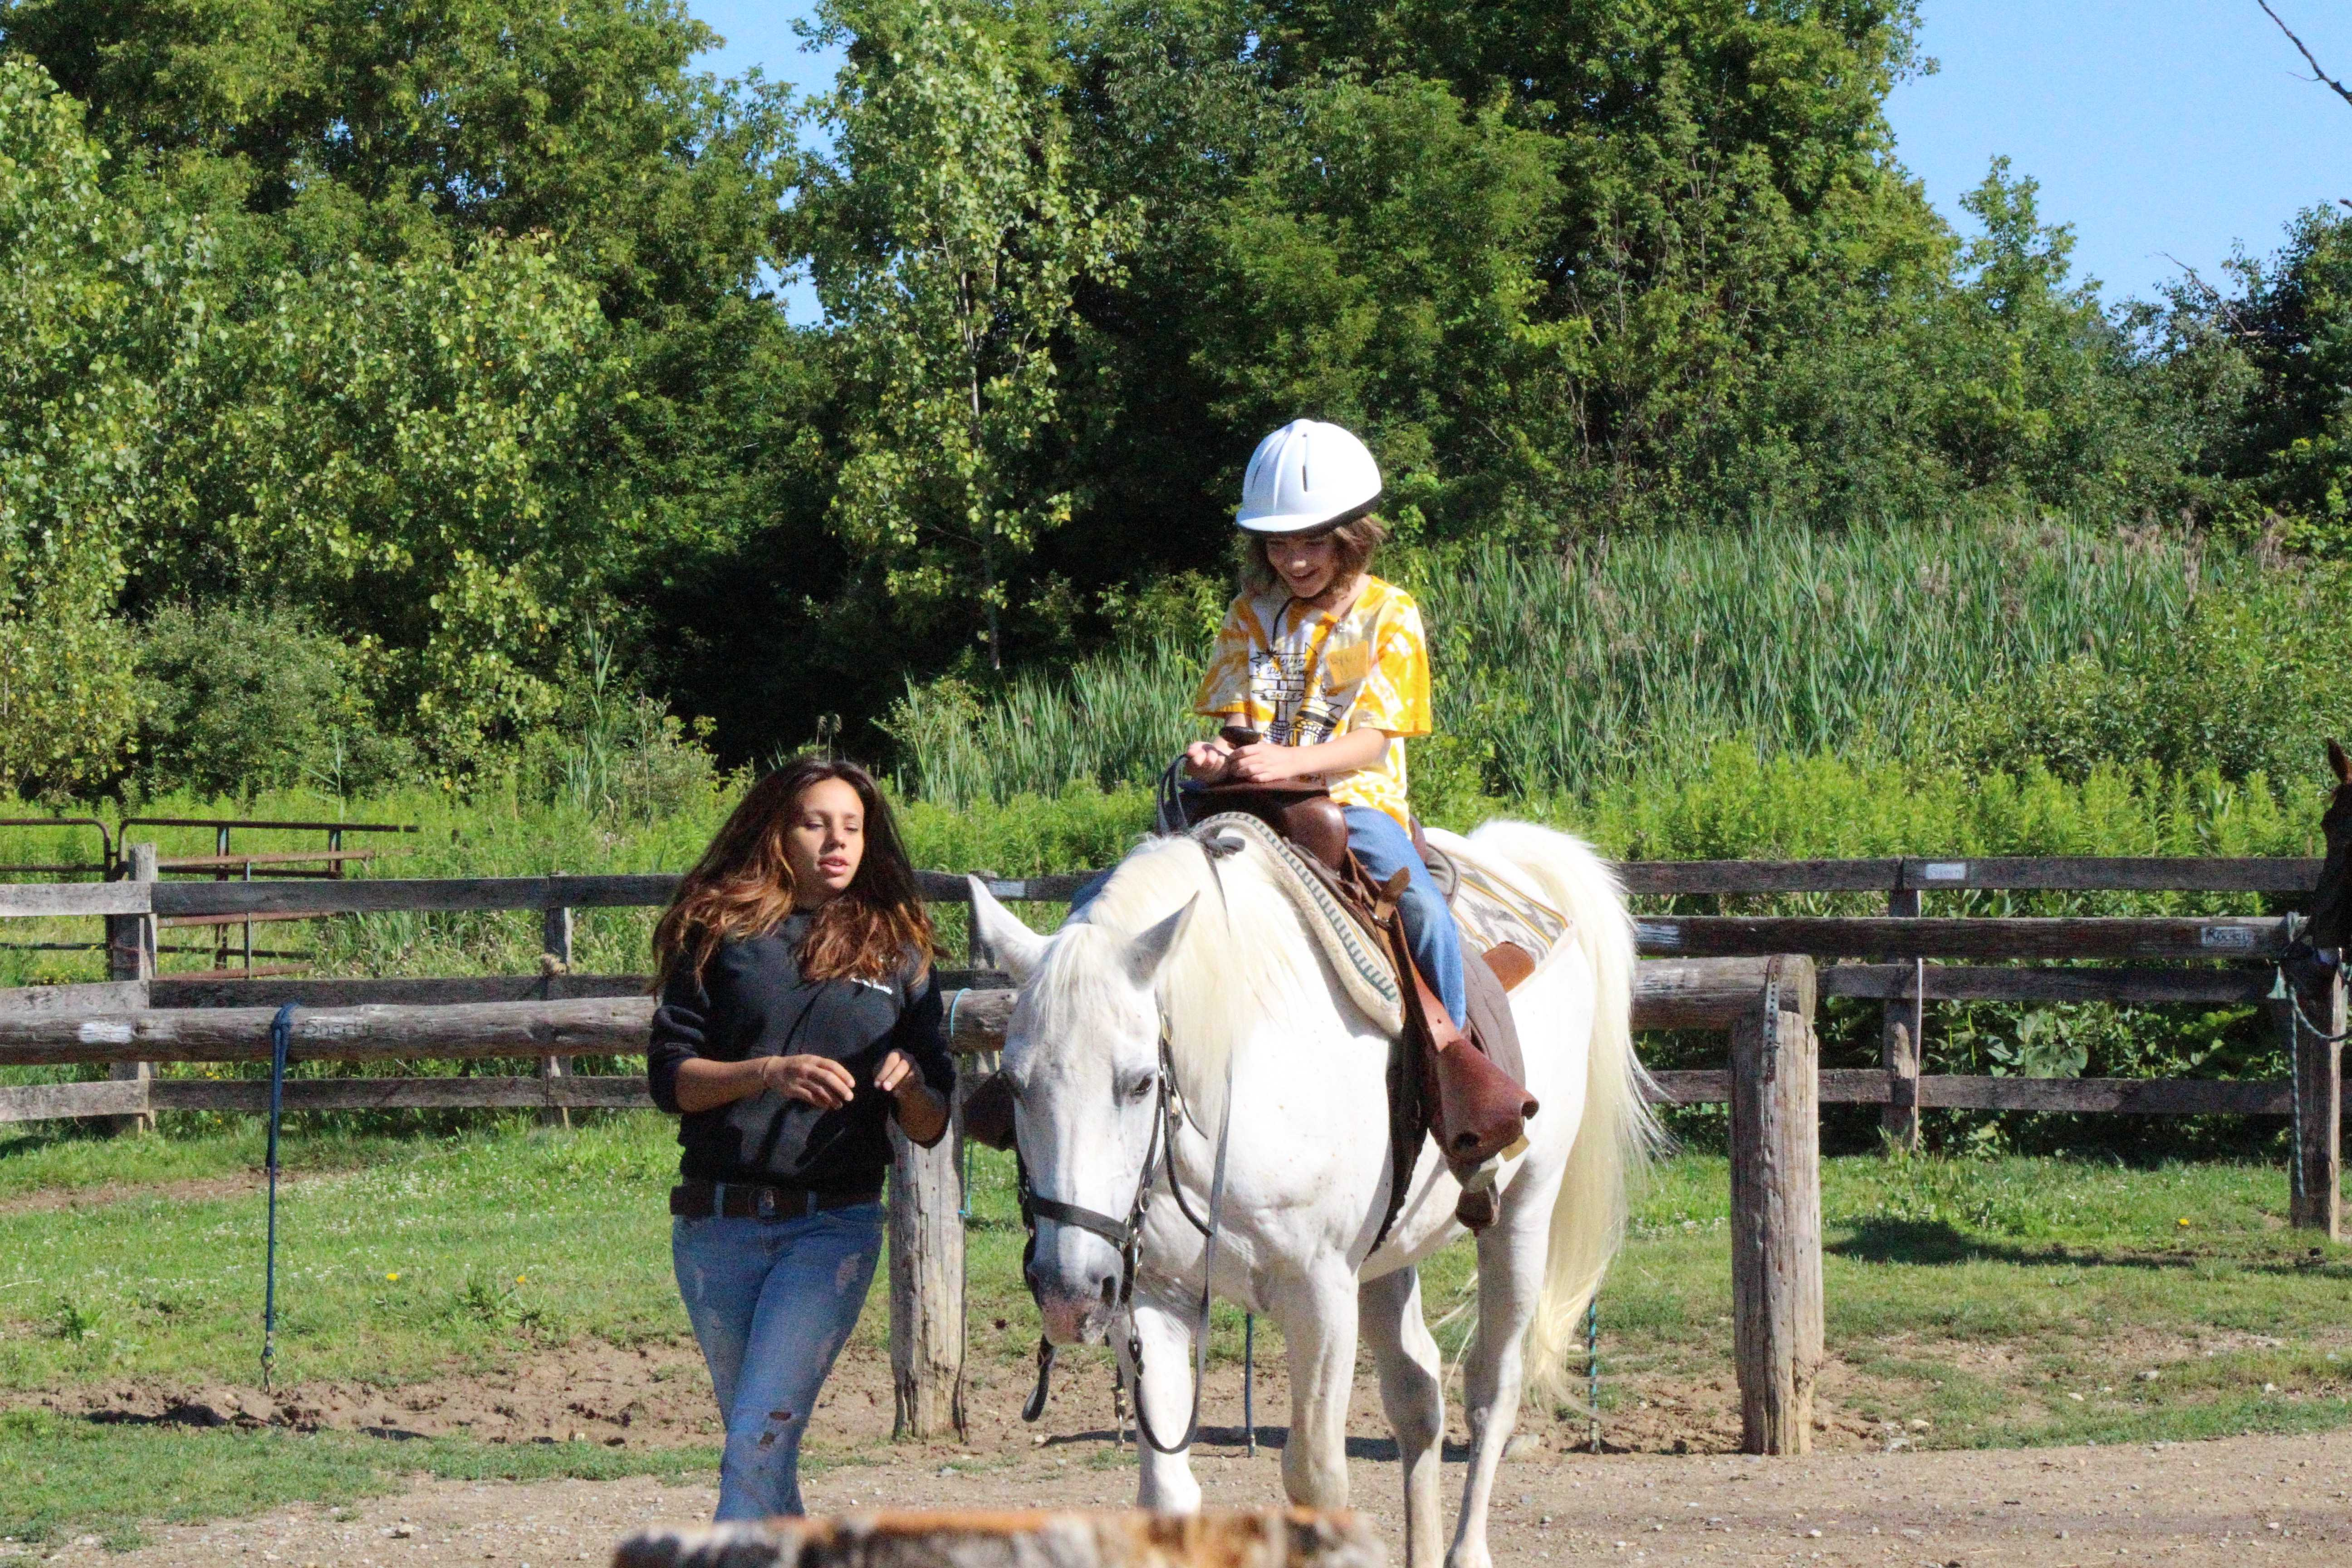 A staff member helps guide a horse and excited rider to the waterhole before the day's ride.